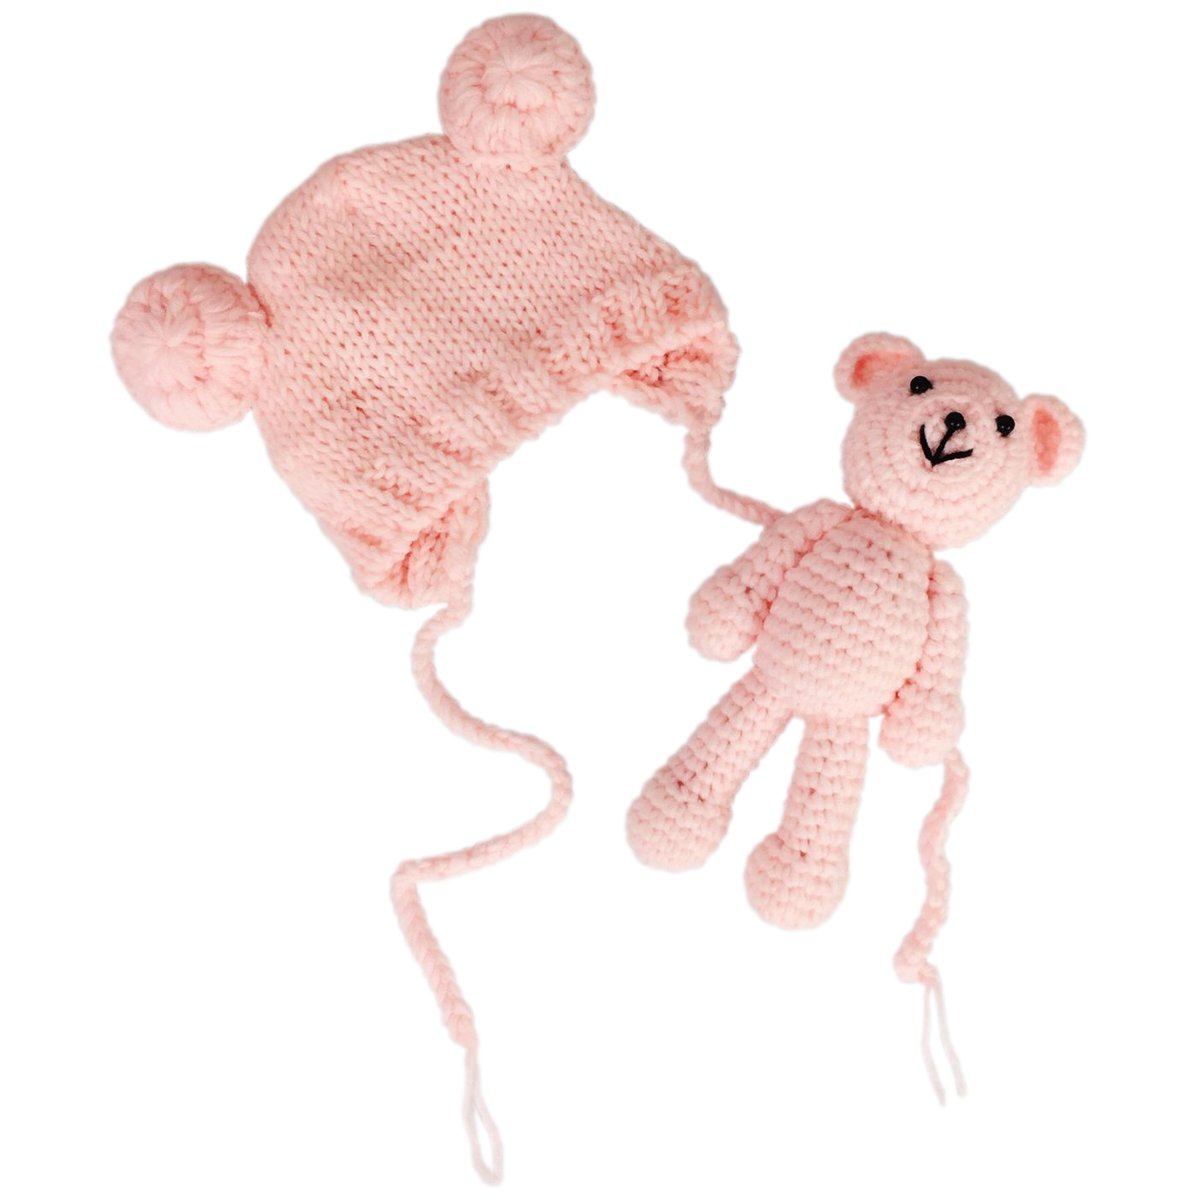 Jastore Infant Newborn Photography Prop Photo Crochet Boys Girls Knit Toy Bear Hats (Pink) by Jastore